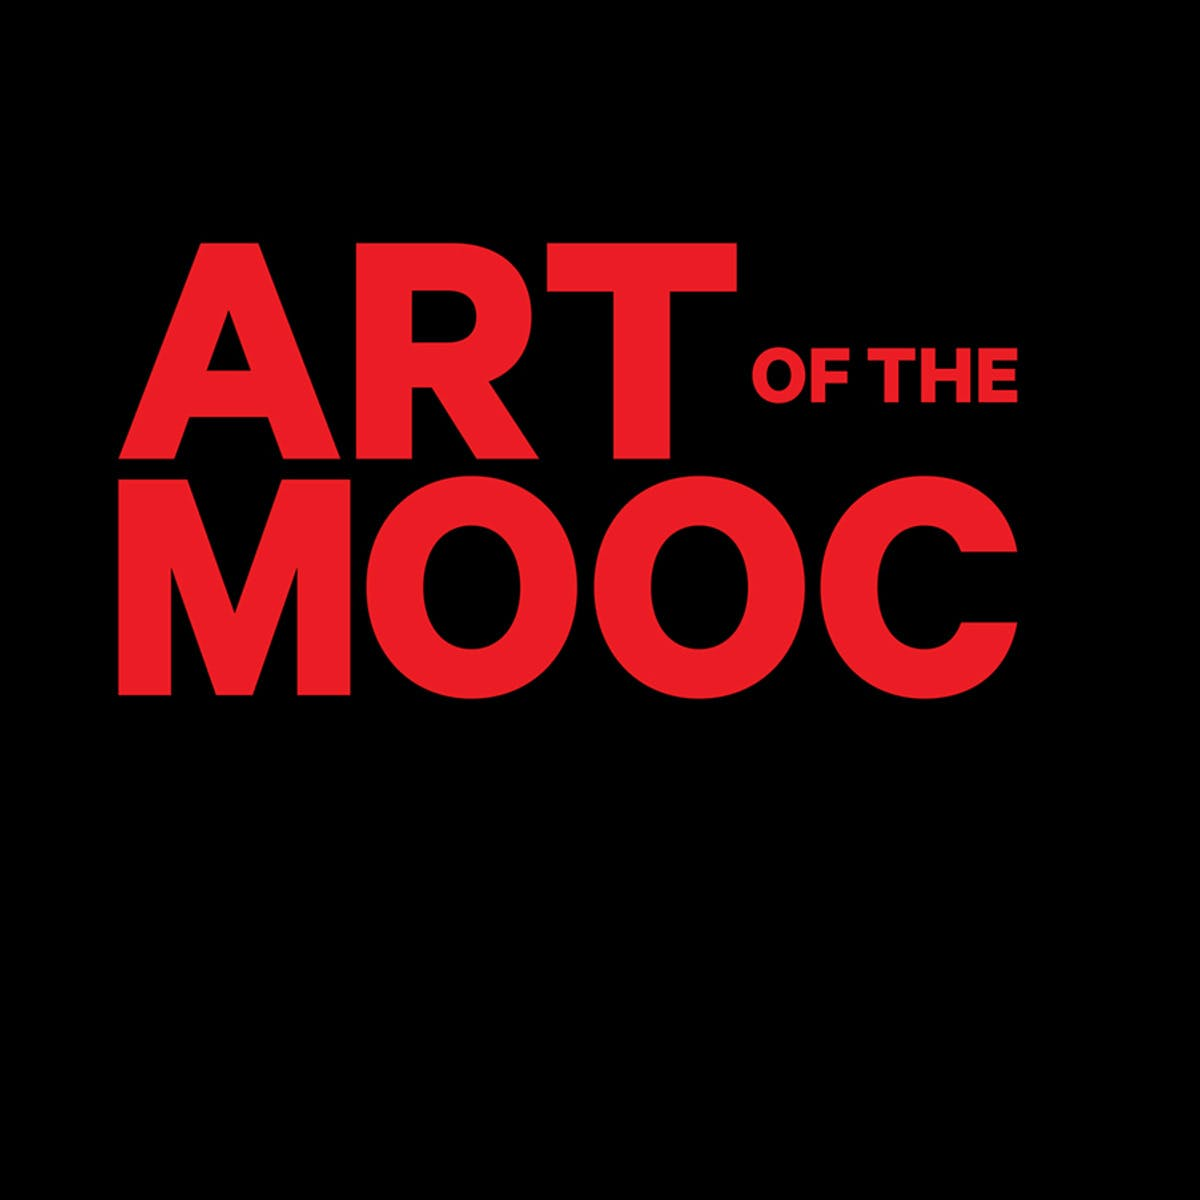 ART of the MOOC: Activism and Social Movements